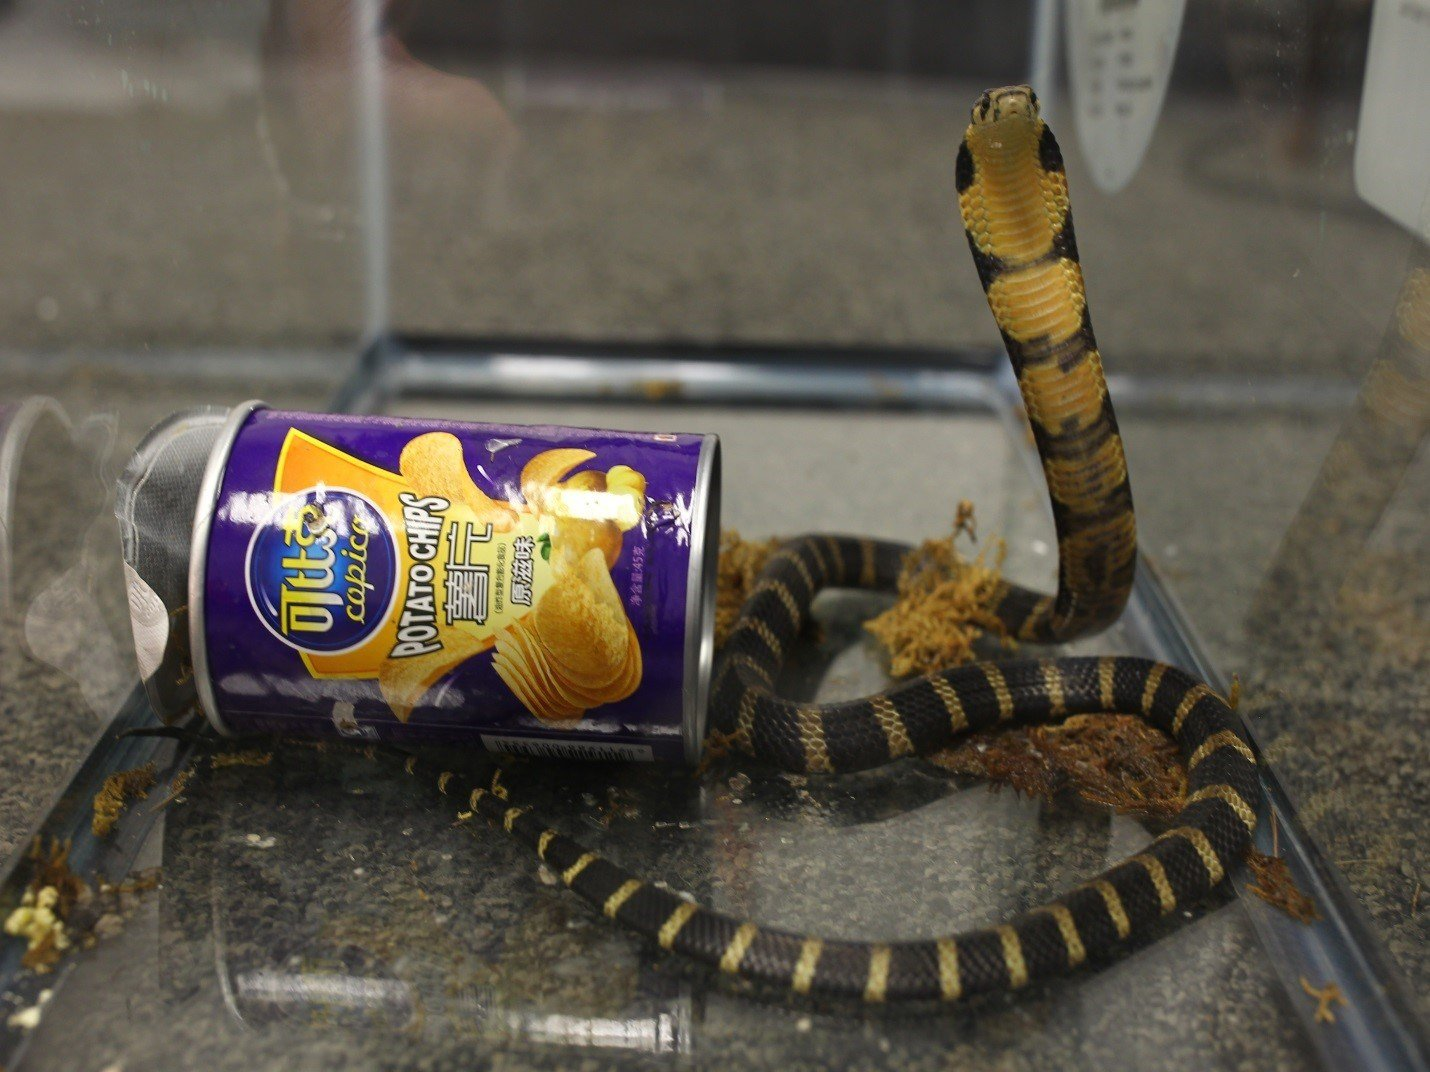 Man Smuggled King Cobras In Potato Chip Cans